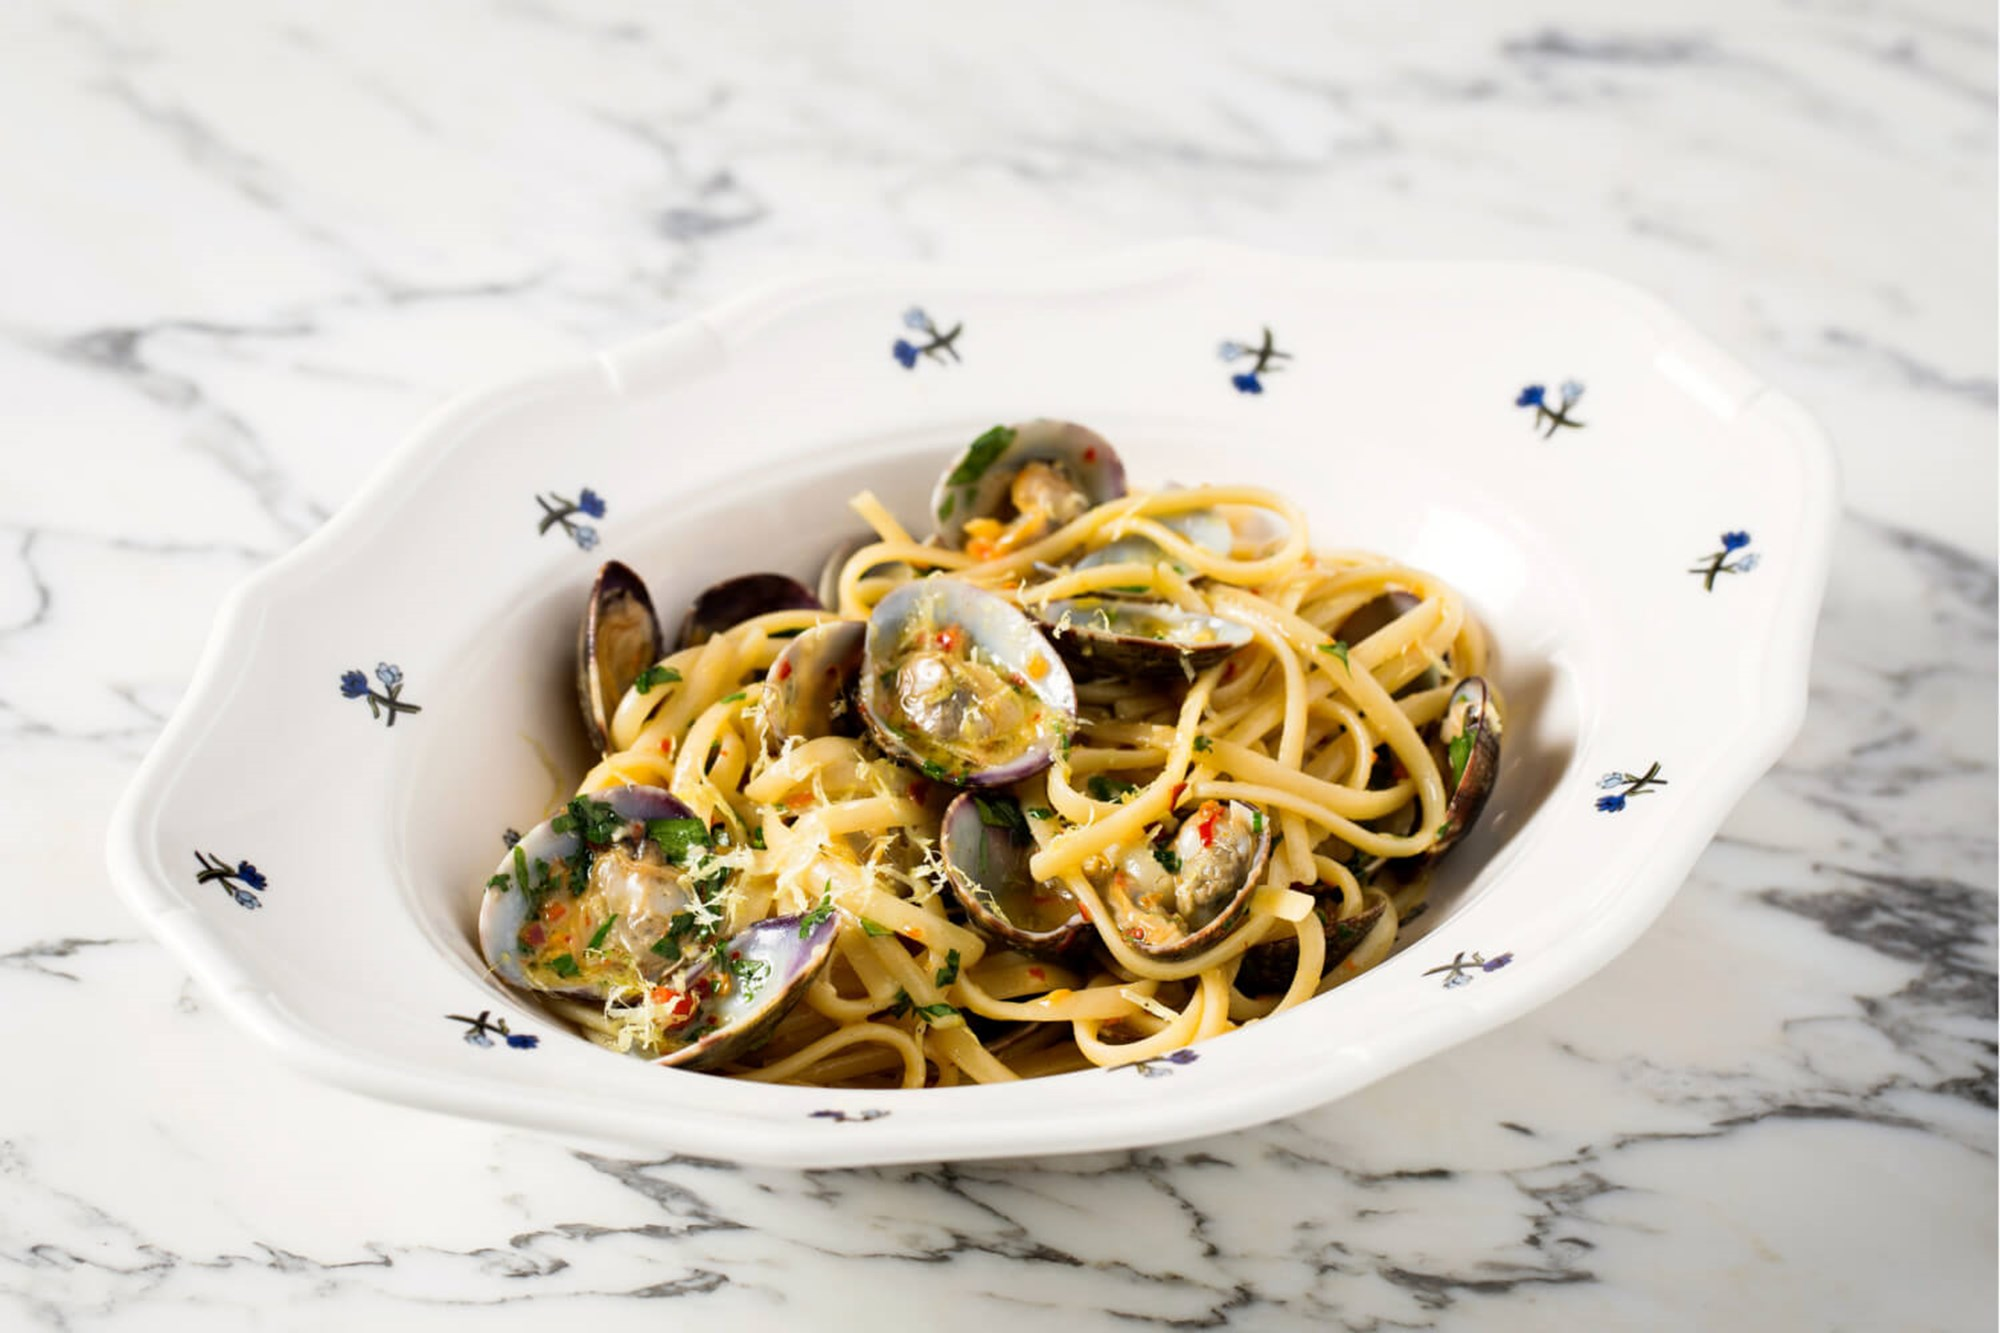 Lunch near Oxford Street in Marylebone at Harry's Bar, Seafood Linguine